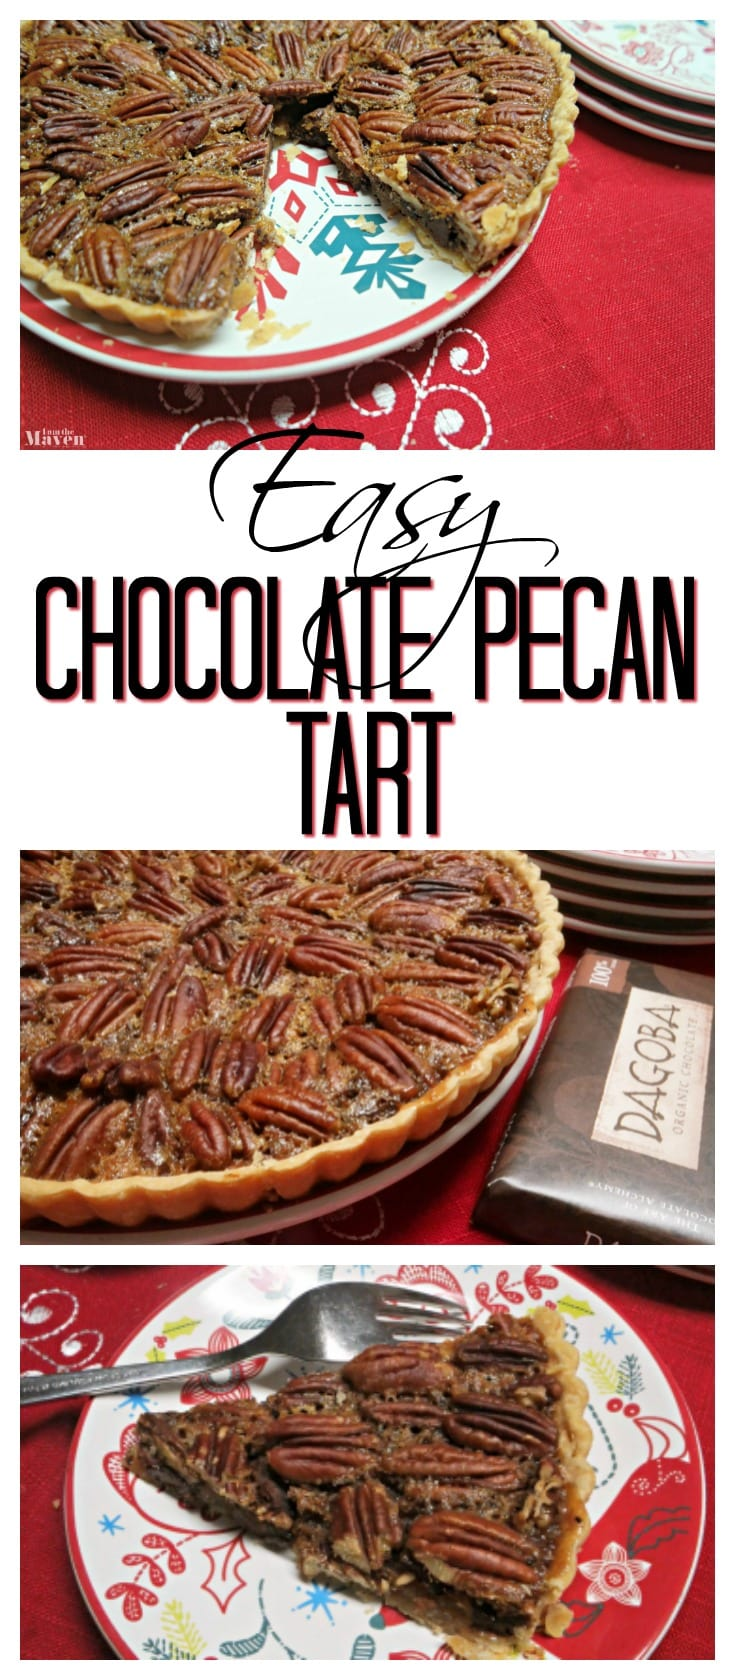 This chocolate pecan tart is simple to make and sure to impress your guests. Serve your chocolate tart plain or to make extra decadent, with ice cream!